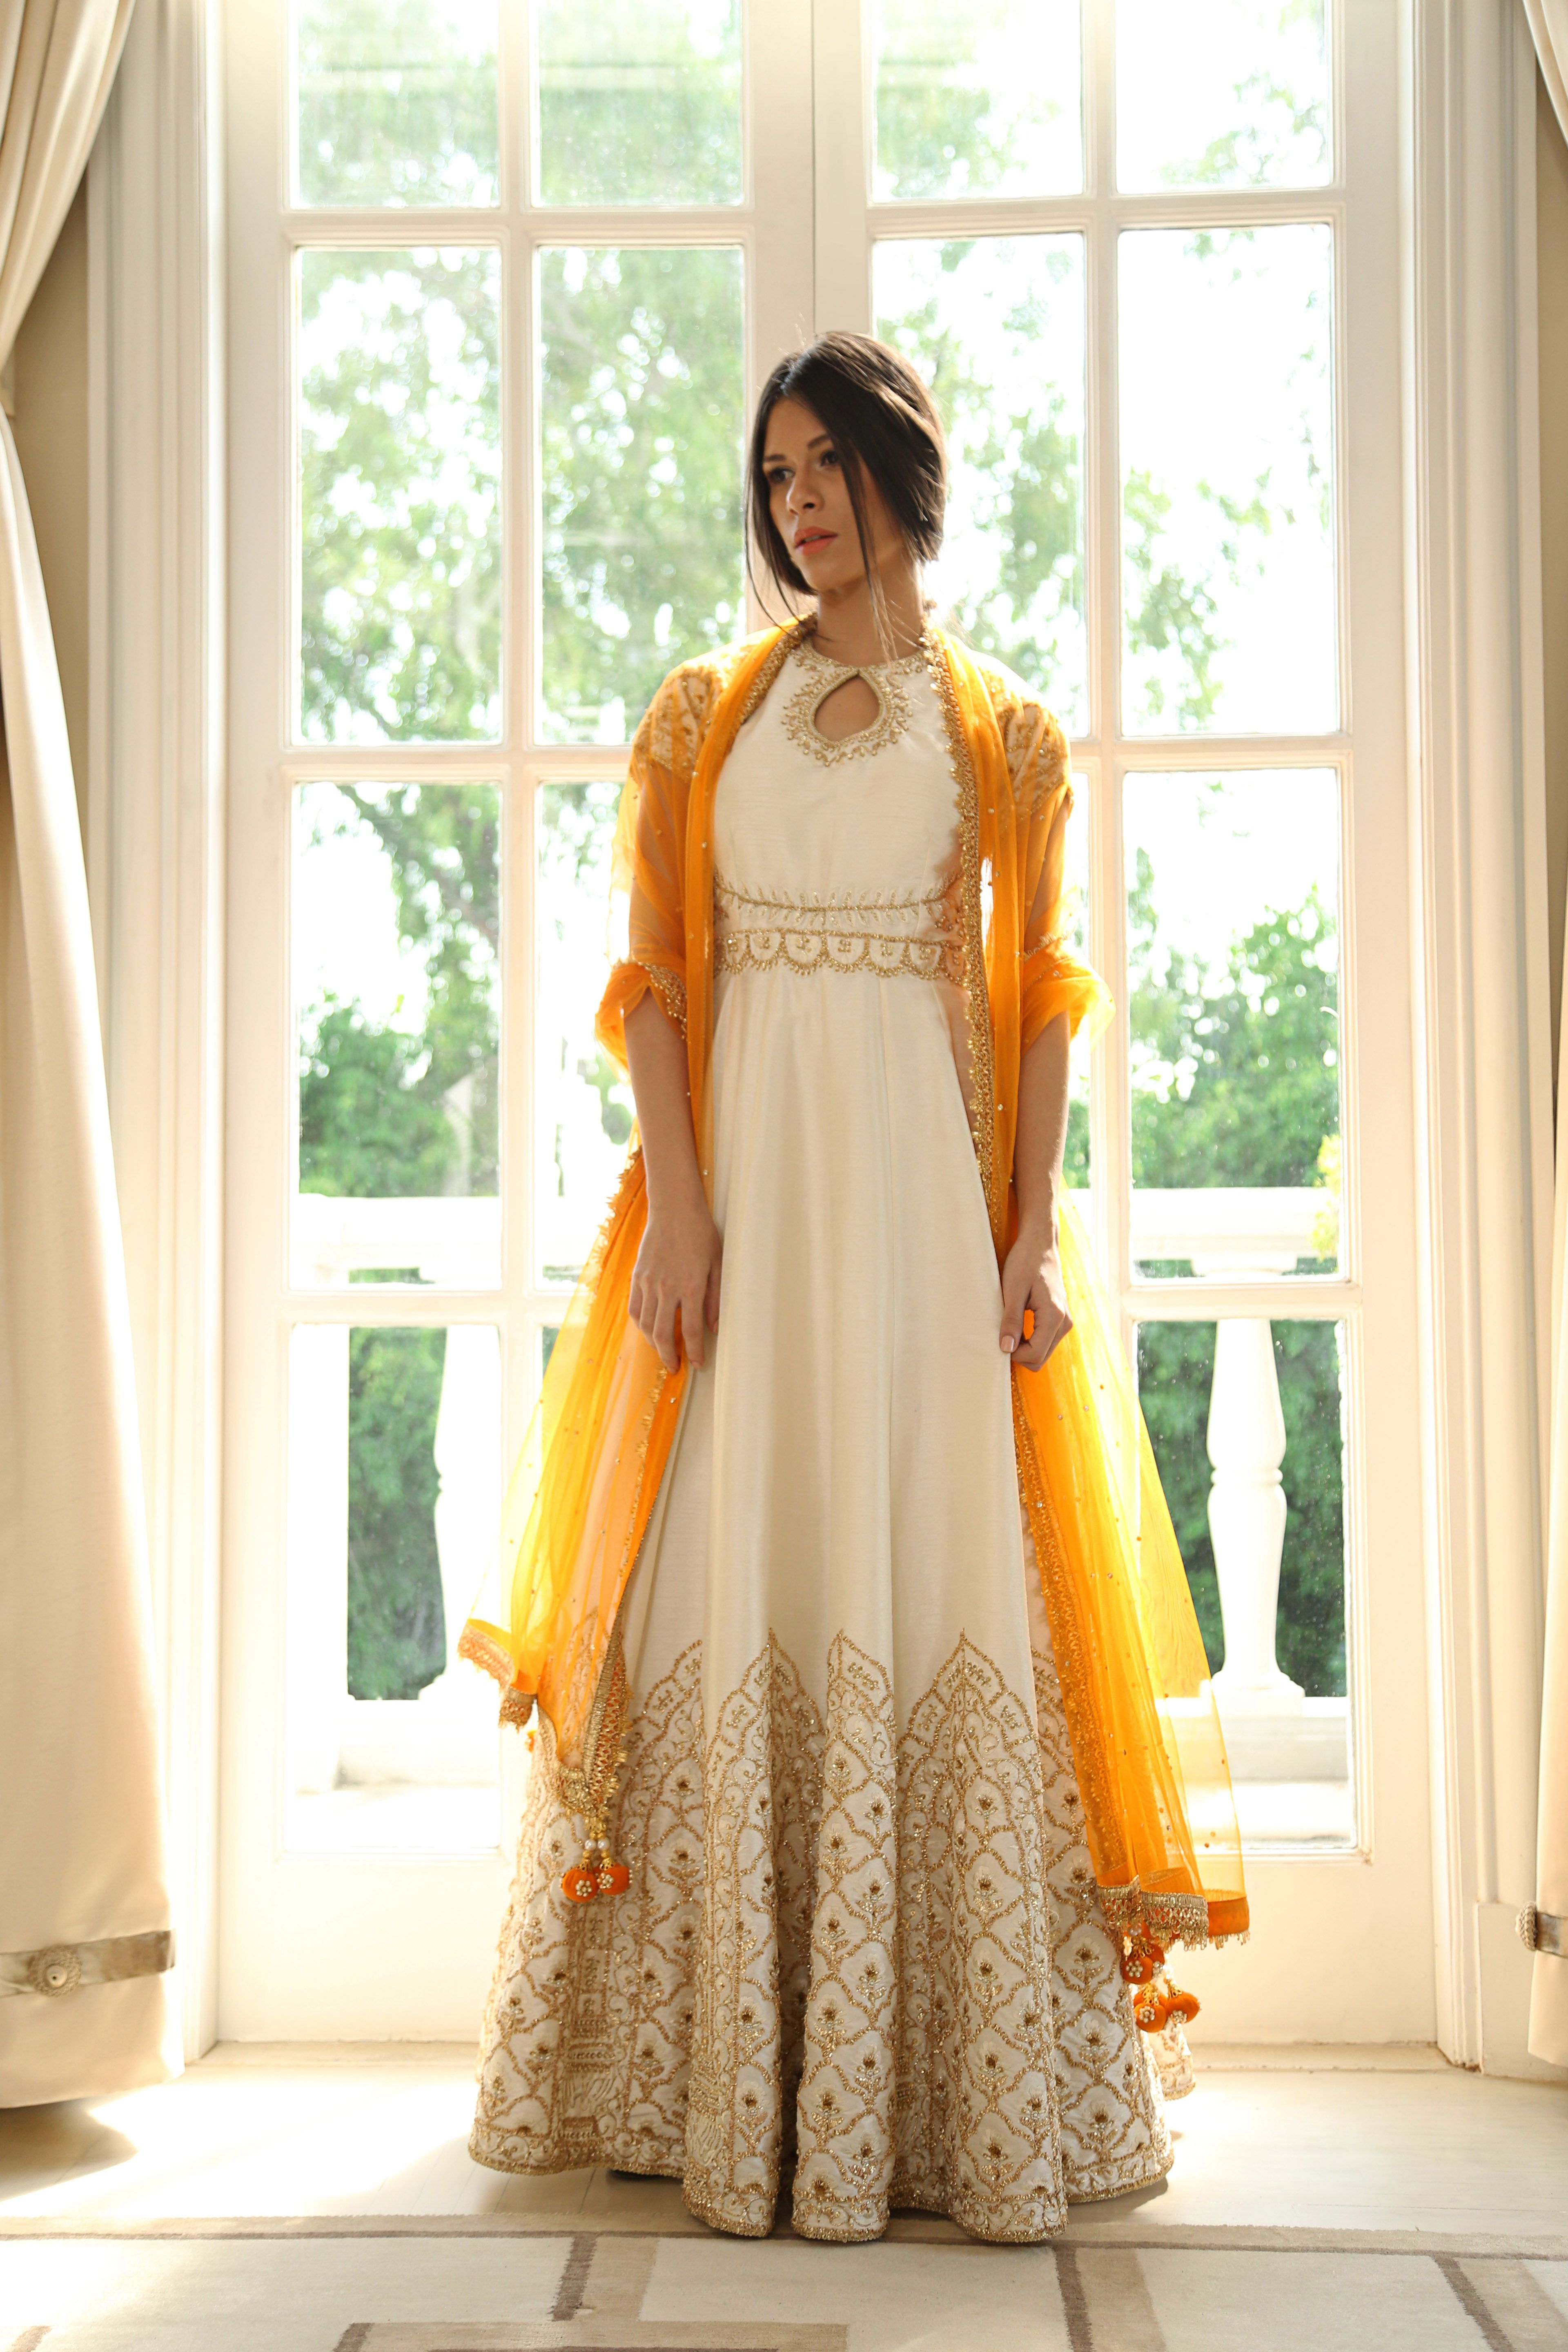 South asian wedding dresses  Oh so pretty  Fashion royale  Pinterest  White anarkali